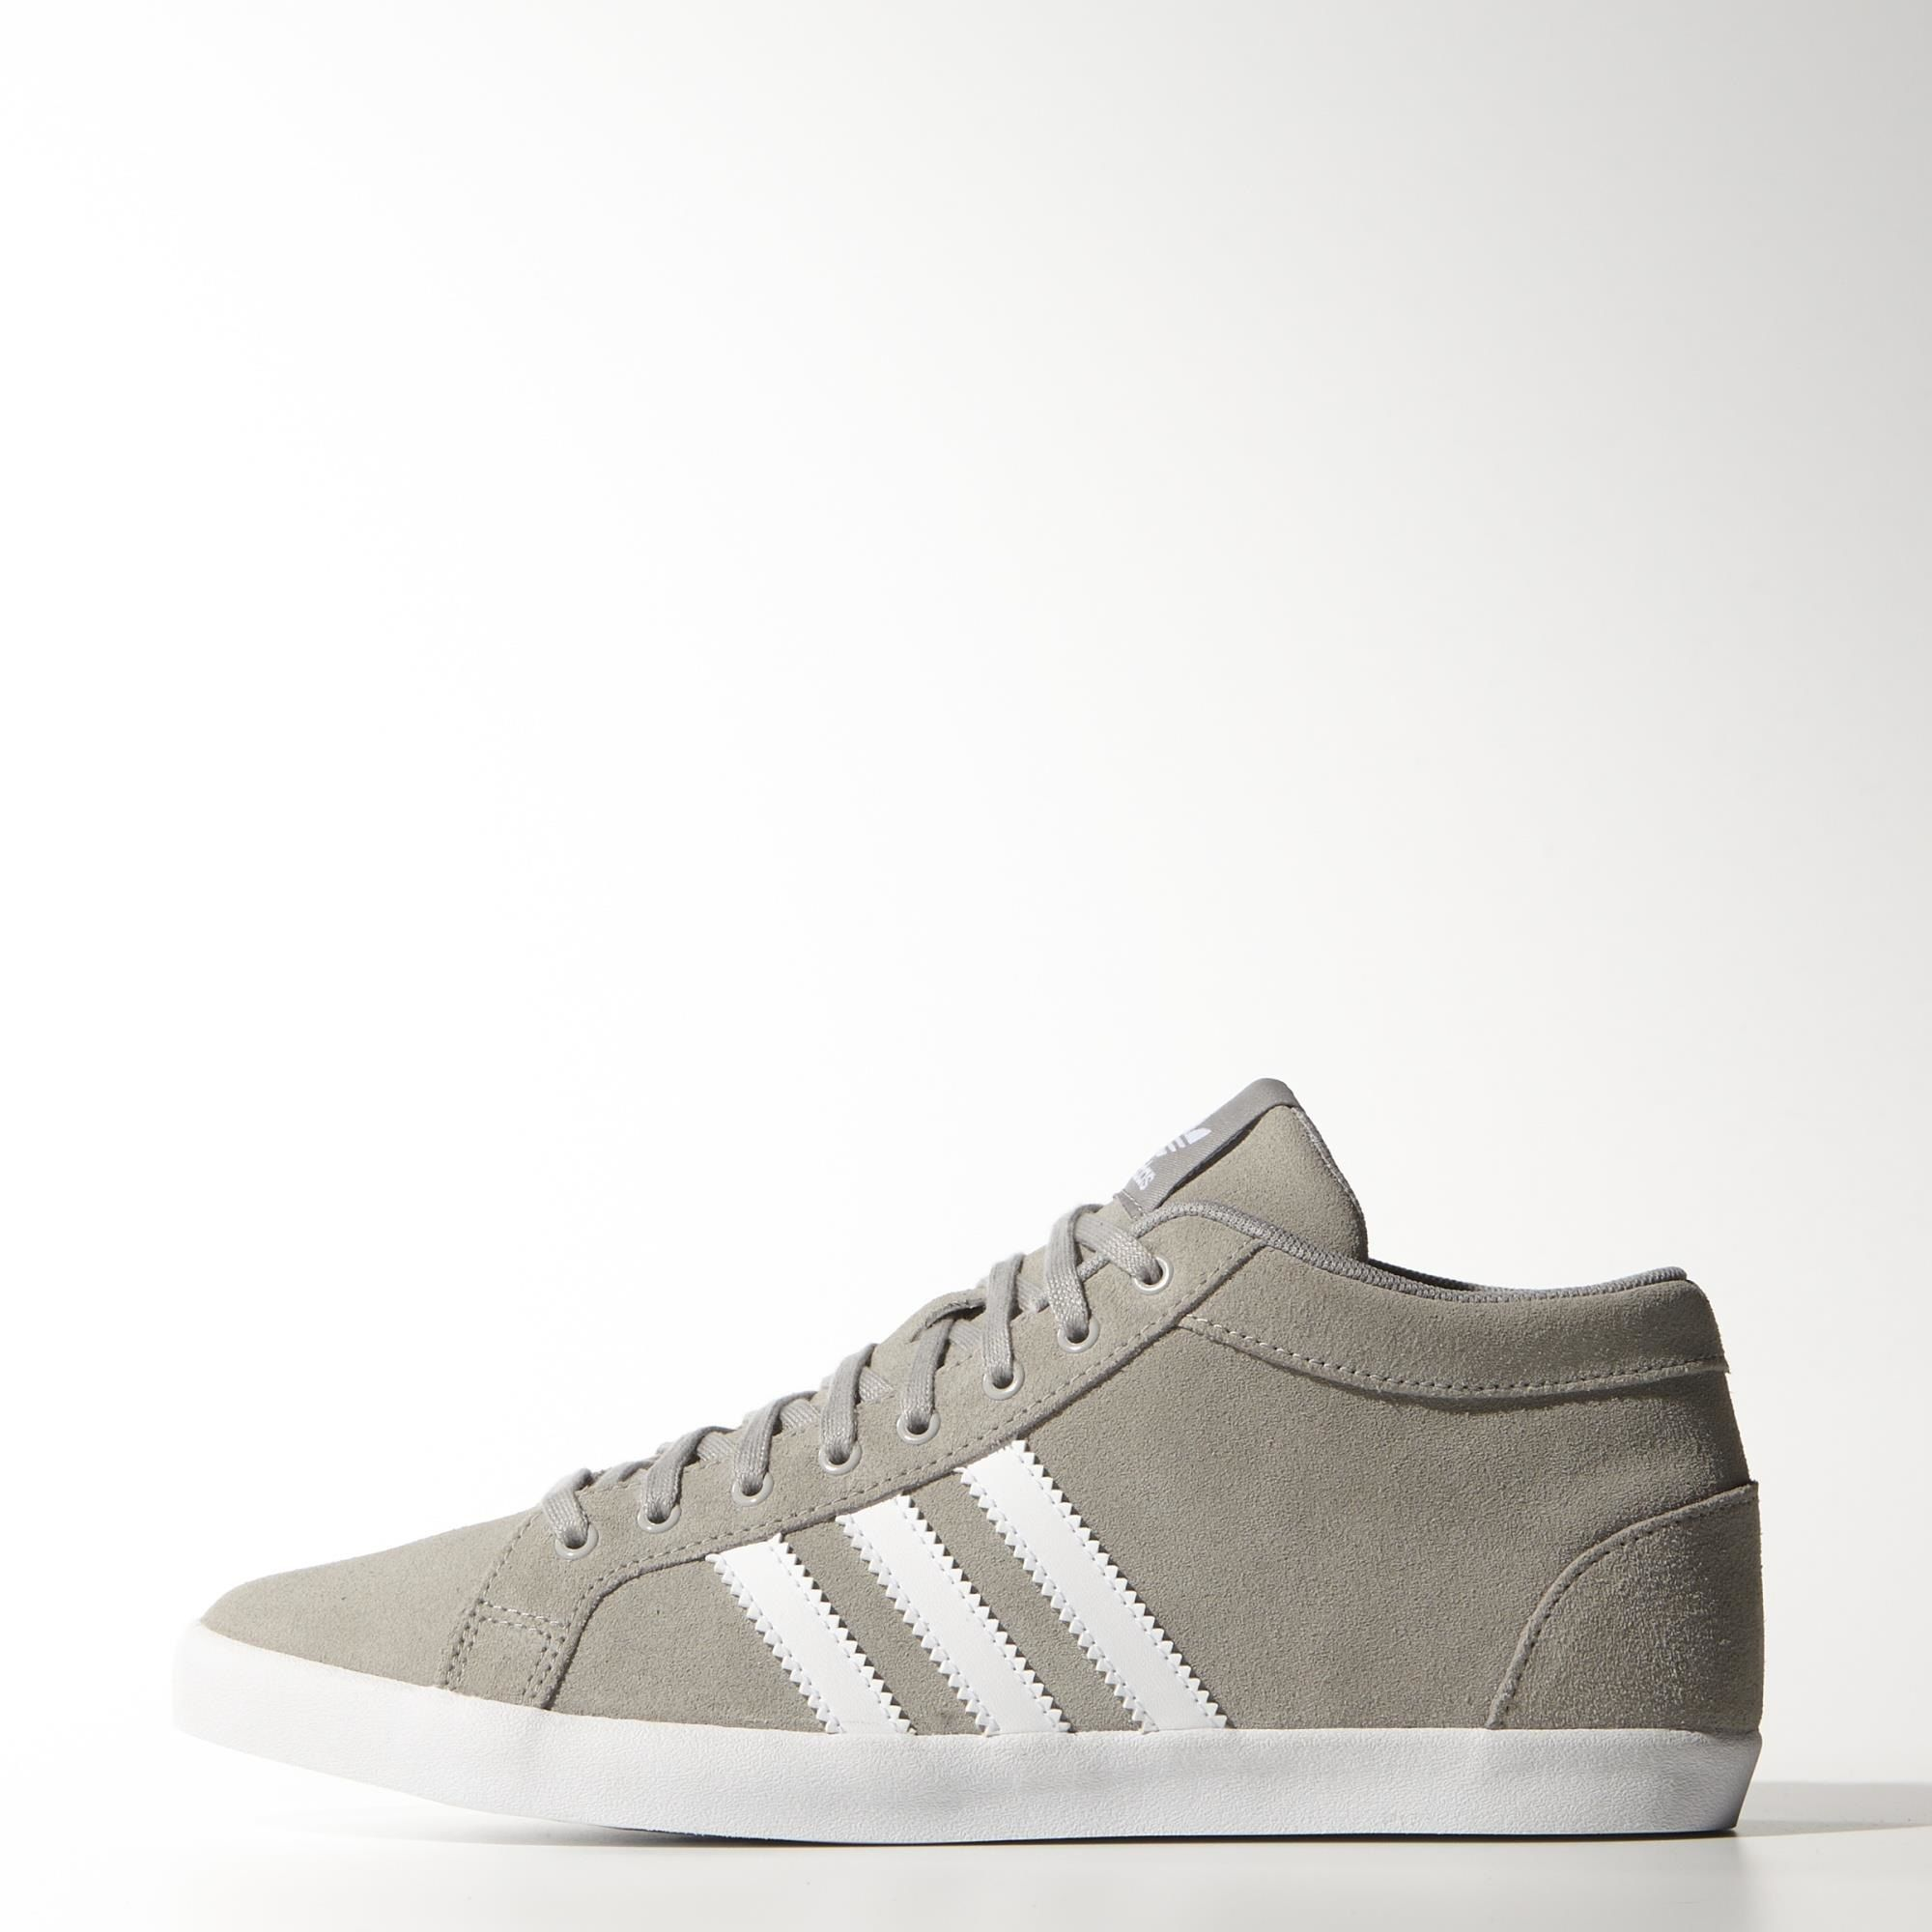 adidas - Adria PS 3-Stripes Mid Shoes